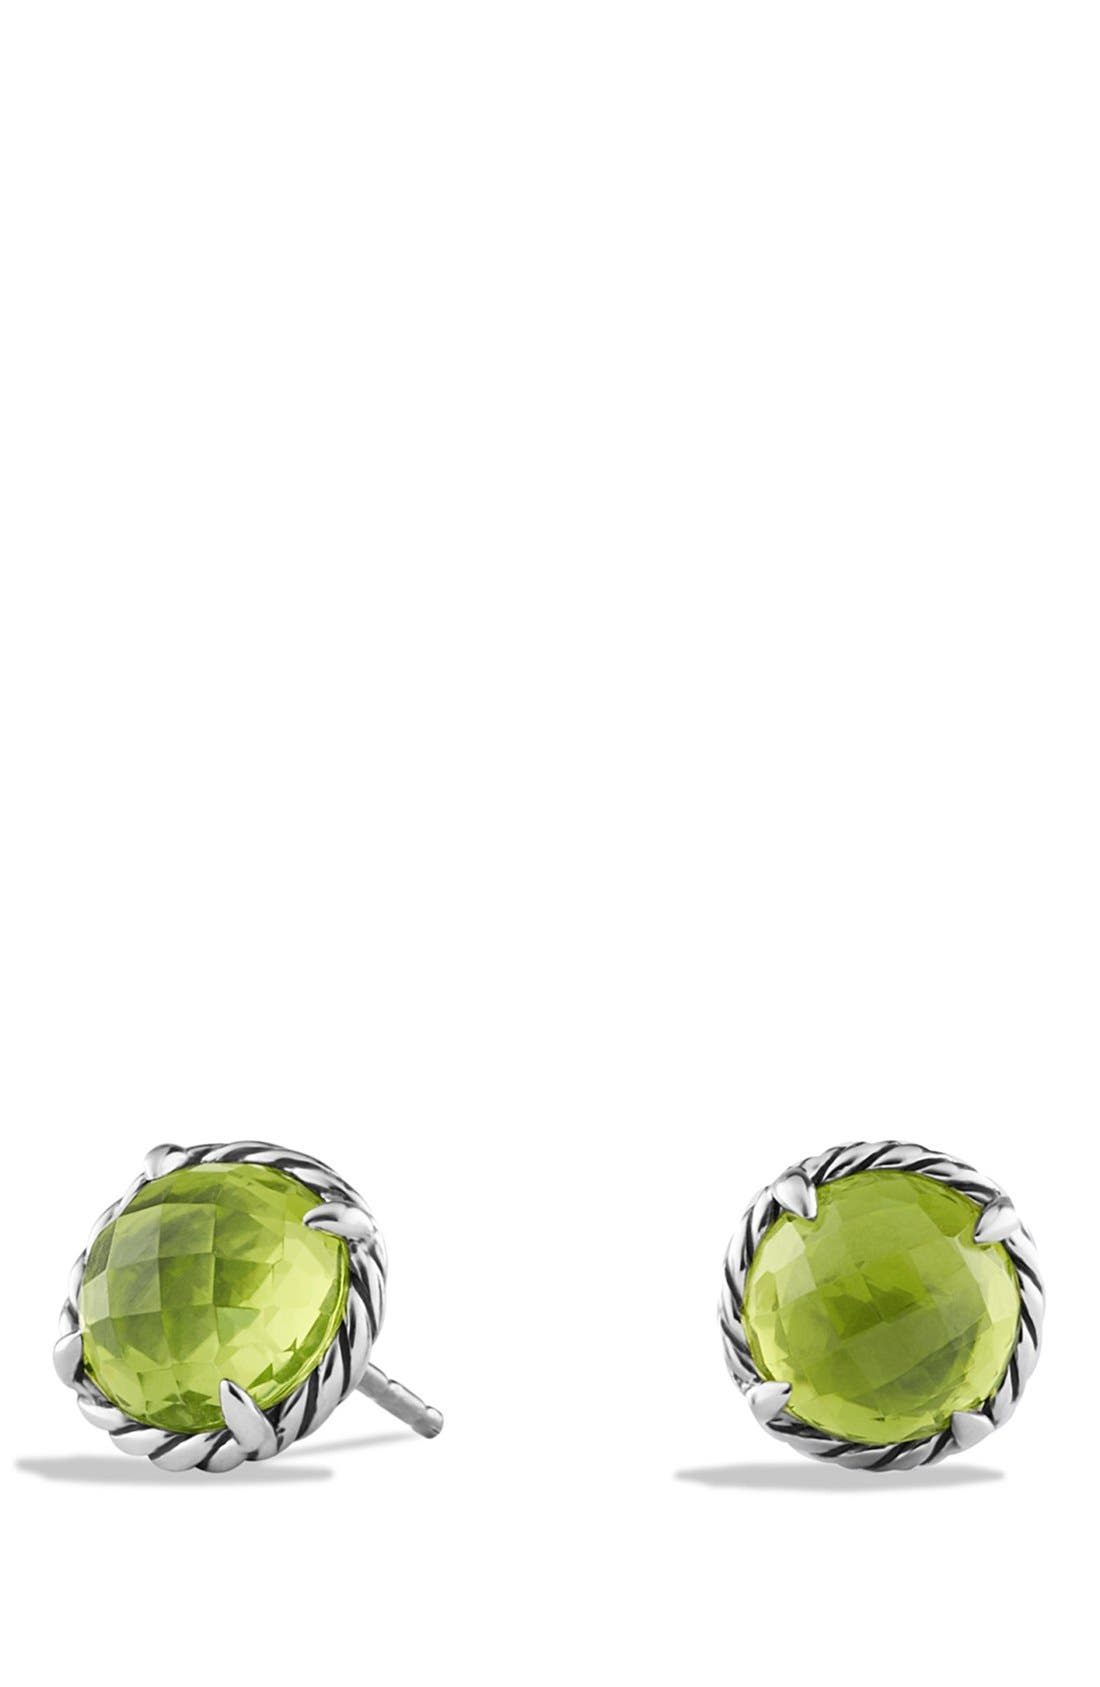 Alternate Image 1 Selected - David Yurman 'Châtelaine' Earrings